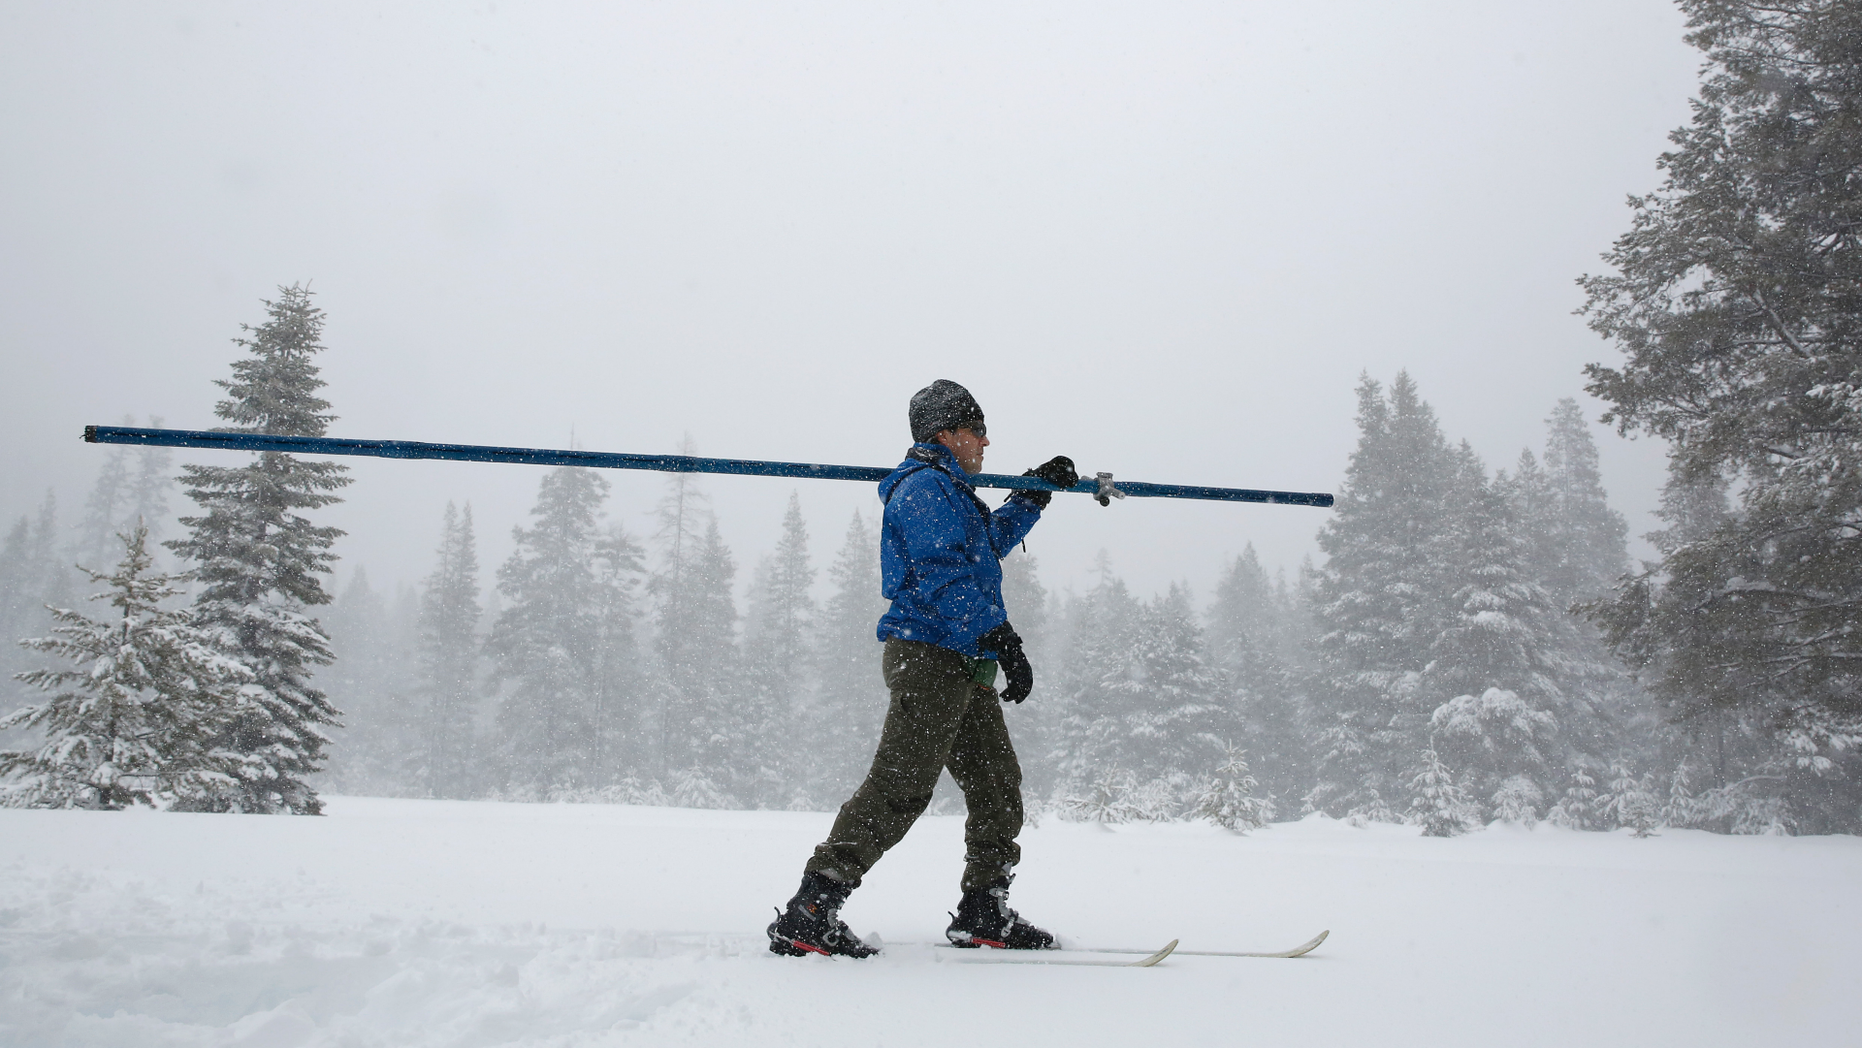 The snow falls as John King of the Department of Water Resources crosses a meadow while conducting the third snow manual survey of the season at Phillips Station near Echo Summit, California, on Thursday, February 28, 2019. survey revealed that the 113-inch depth with a snow water equivalent of 43.5 inches at this location at this time of year. (AP Photo / Rich Pedroncelli)